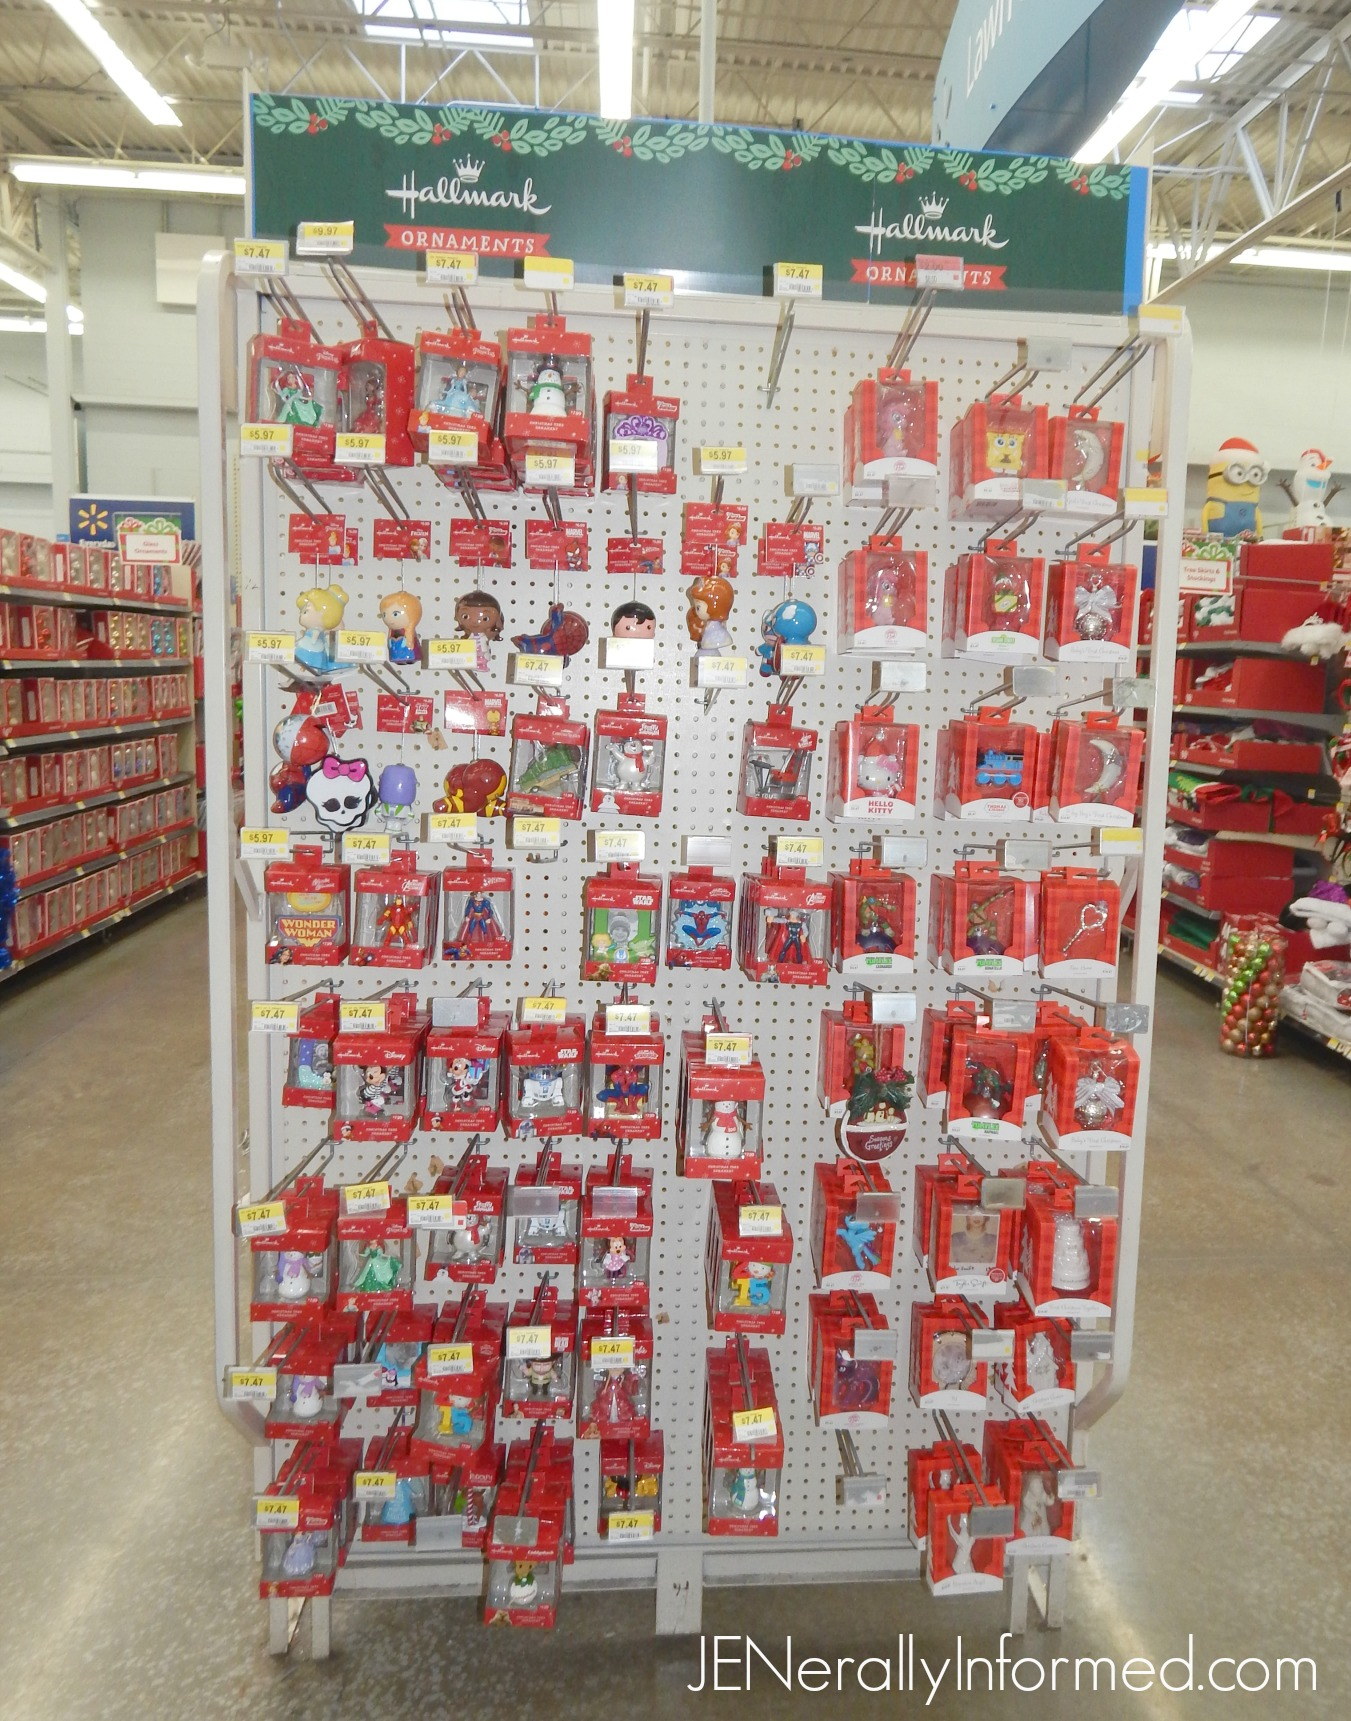 If you would like to add to your Hallmark ornament collection, Walmart has 16 exclusives including resin figurines, Holiday Barbie, new deco figurines and ...